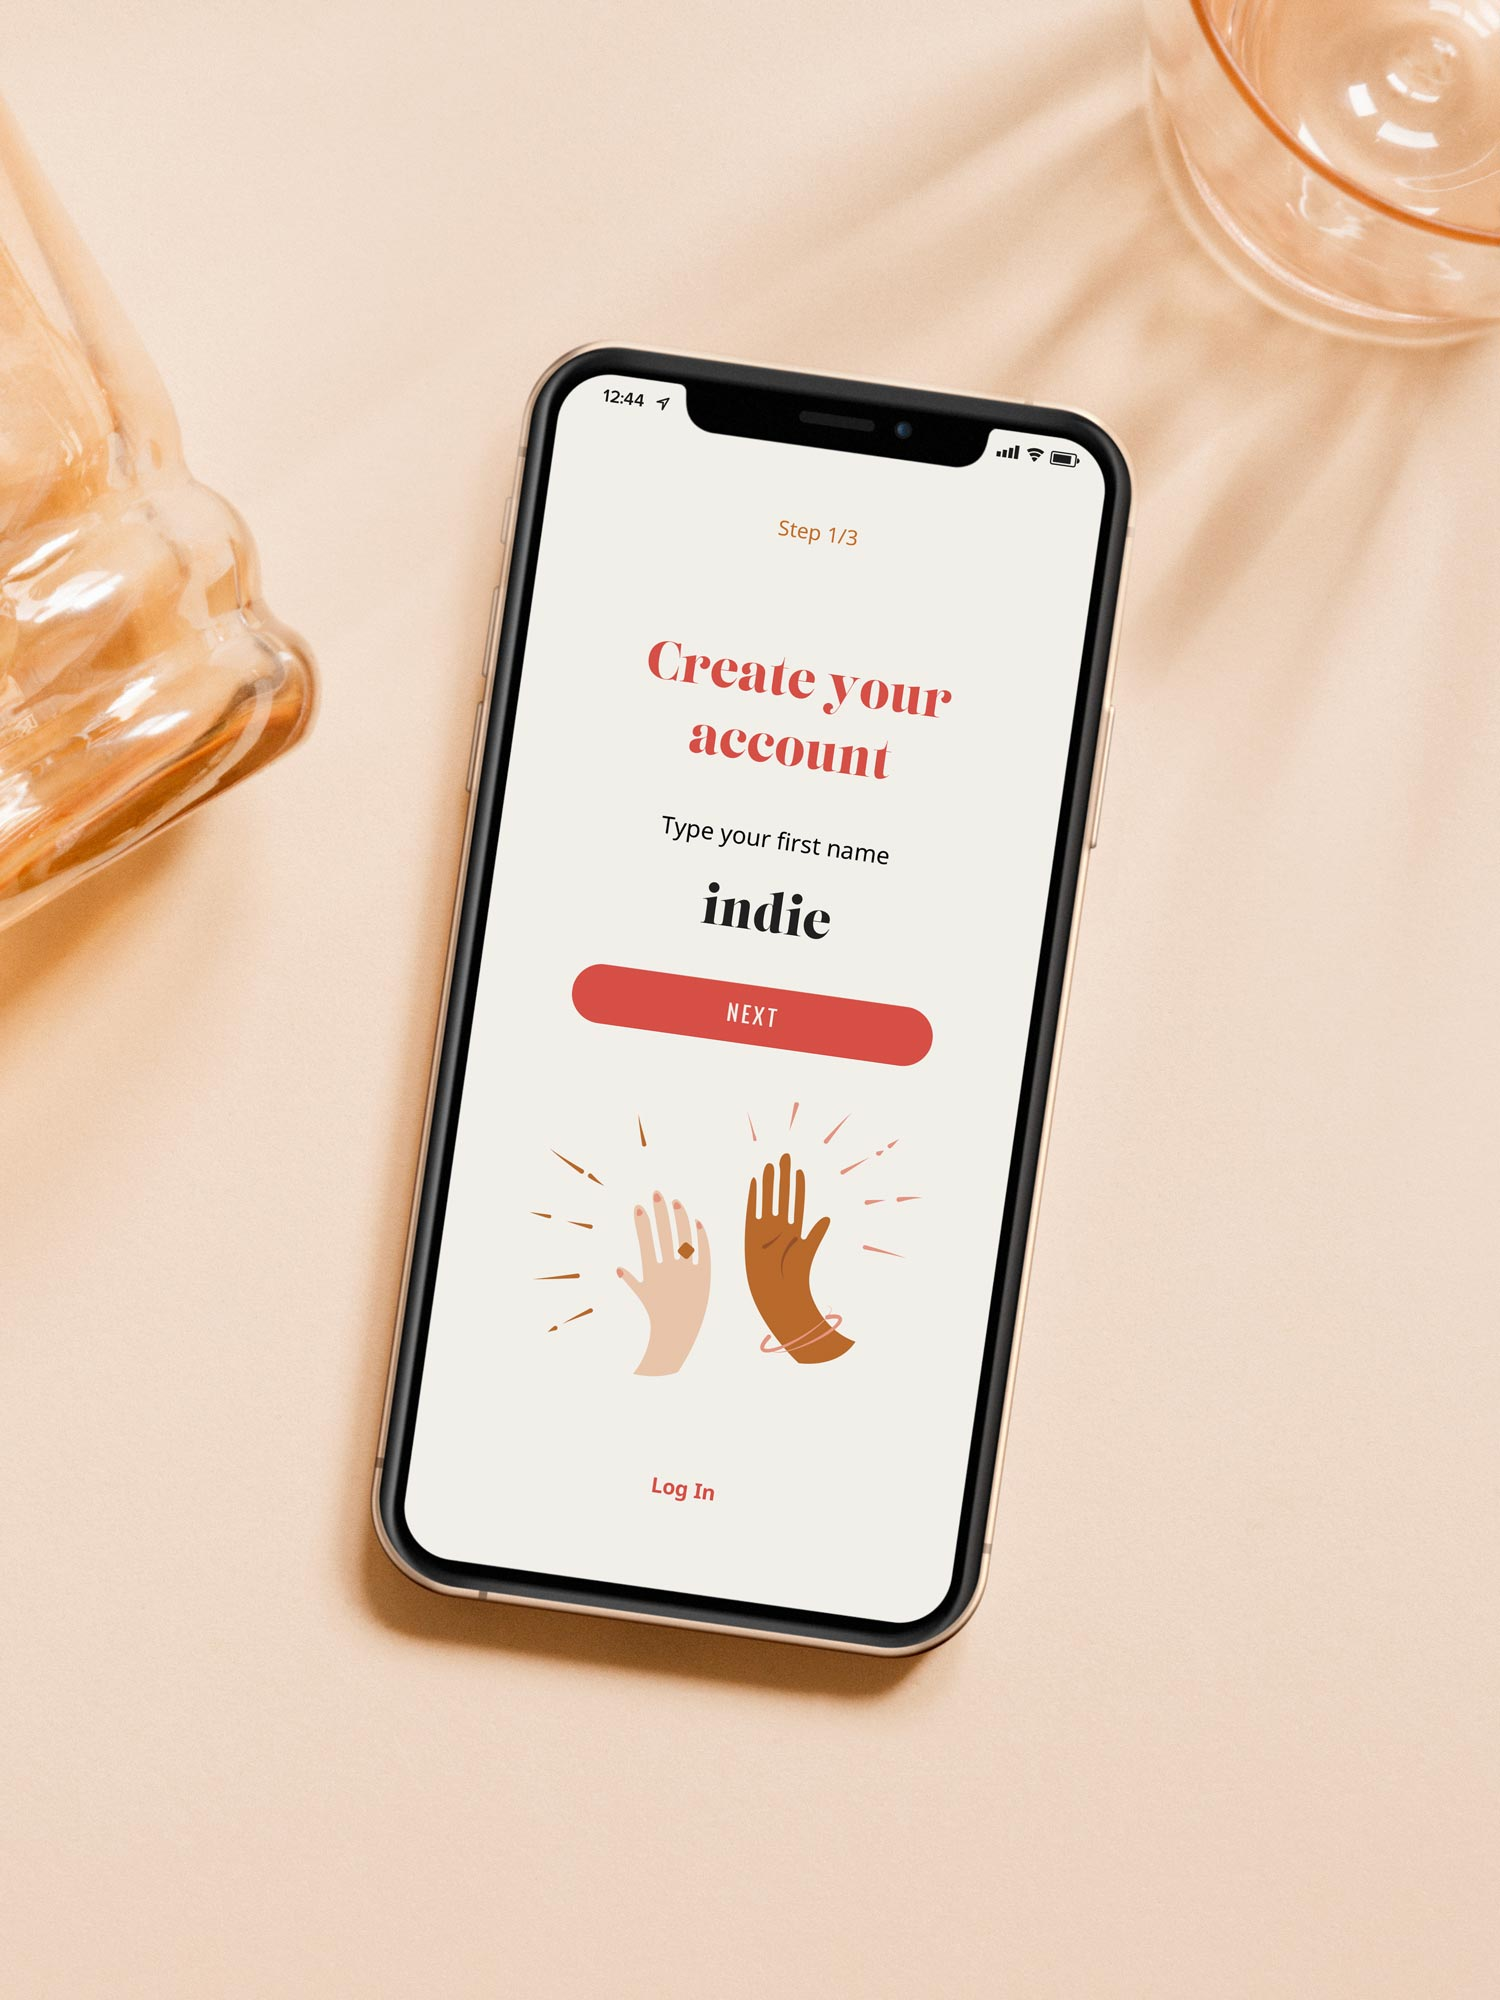 The Heavily Meditated app sign up screen, displayed on an iphone